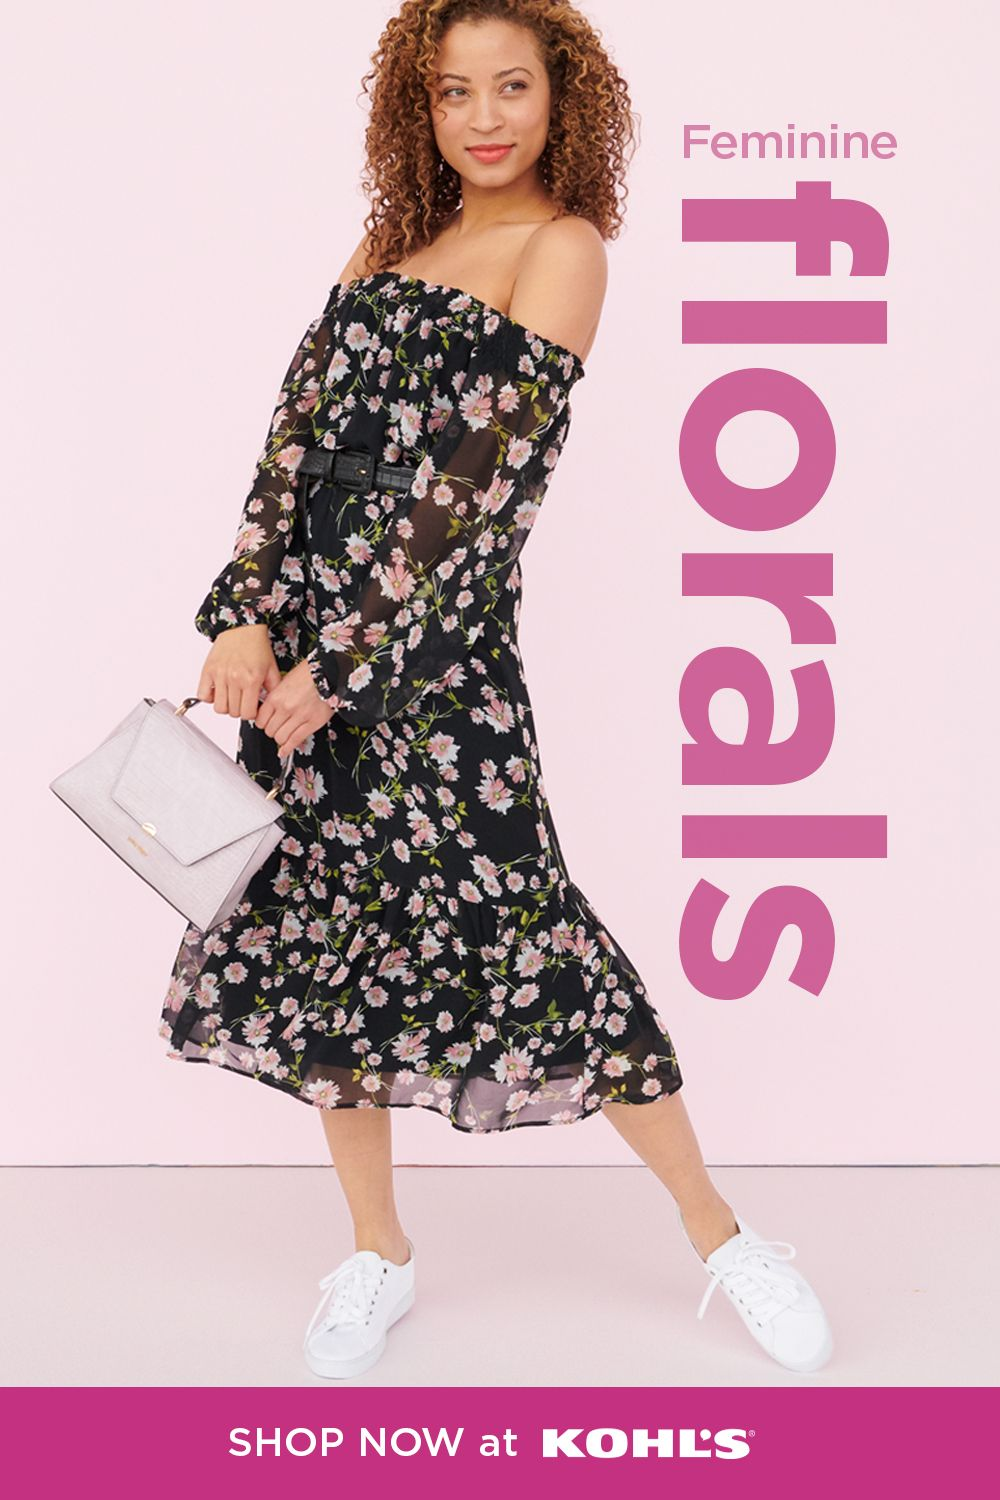 Step into spring with sweet florals and cool accessories. Try out an off-the-shoulder dress with feminine details, then complete the look with a pair of white sneakers and a lavender purse. Shop LC Lauren Conrad, Nine West and more at Kohl's and Kohls.com. #springstyle #dresses